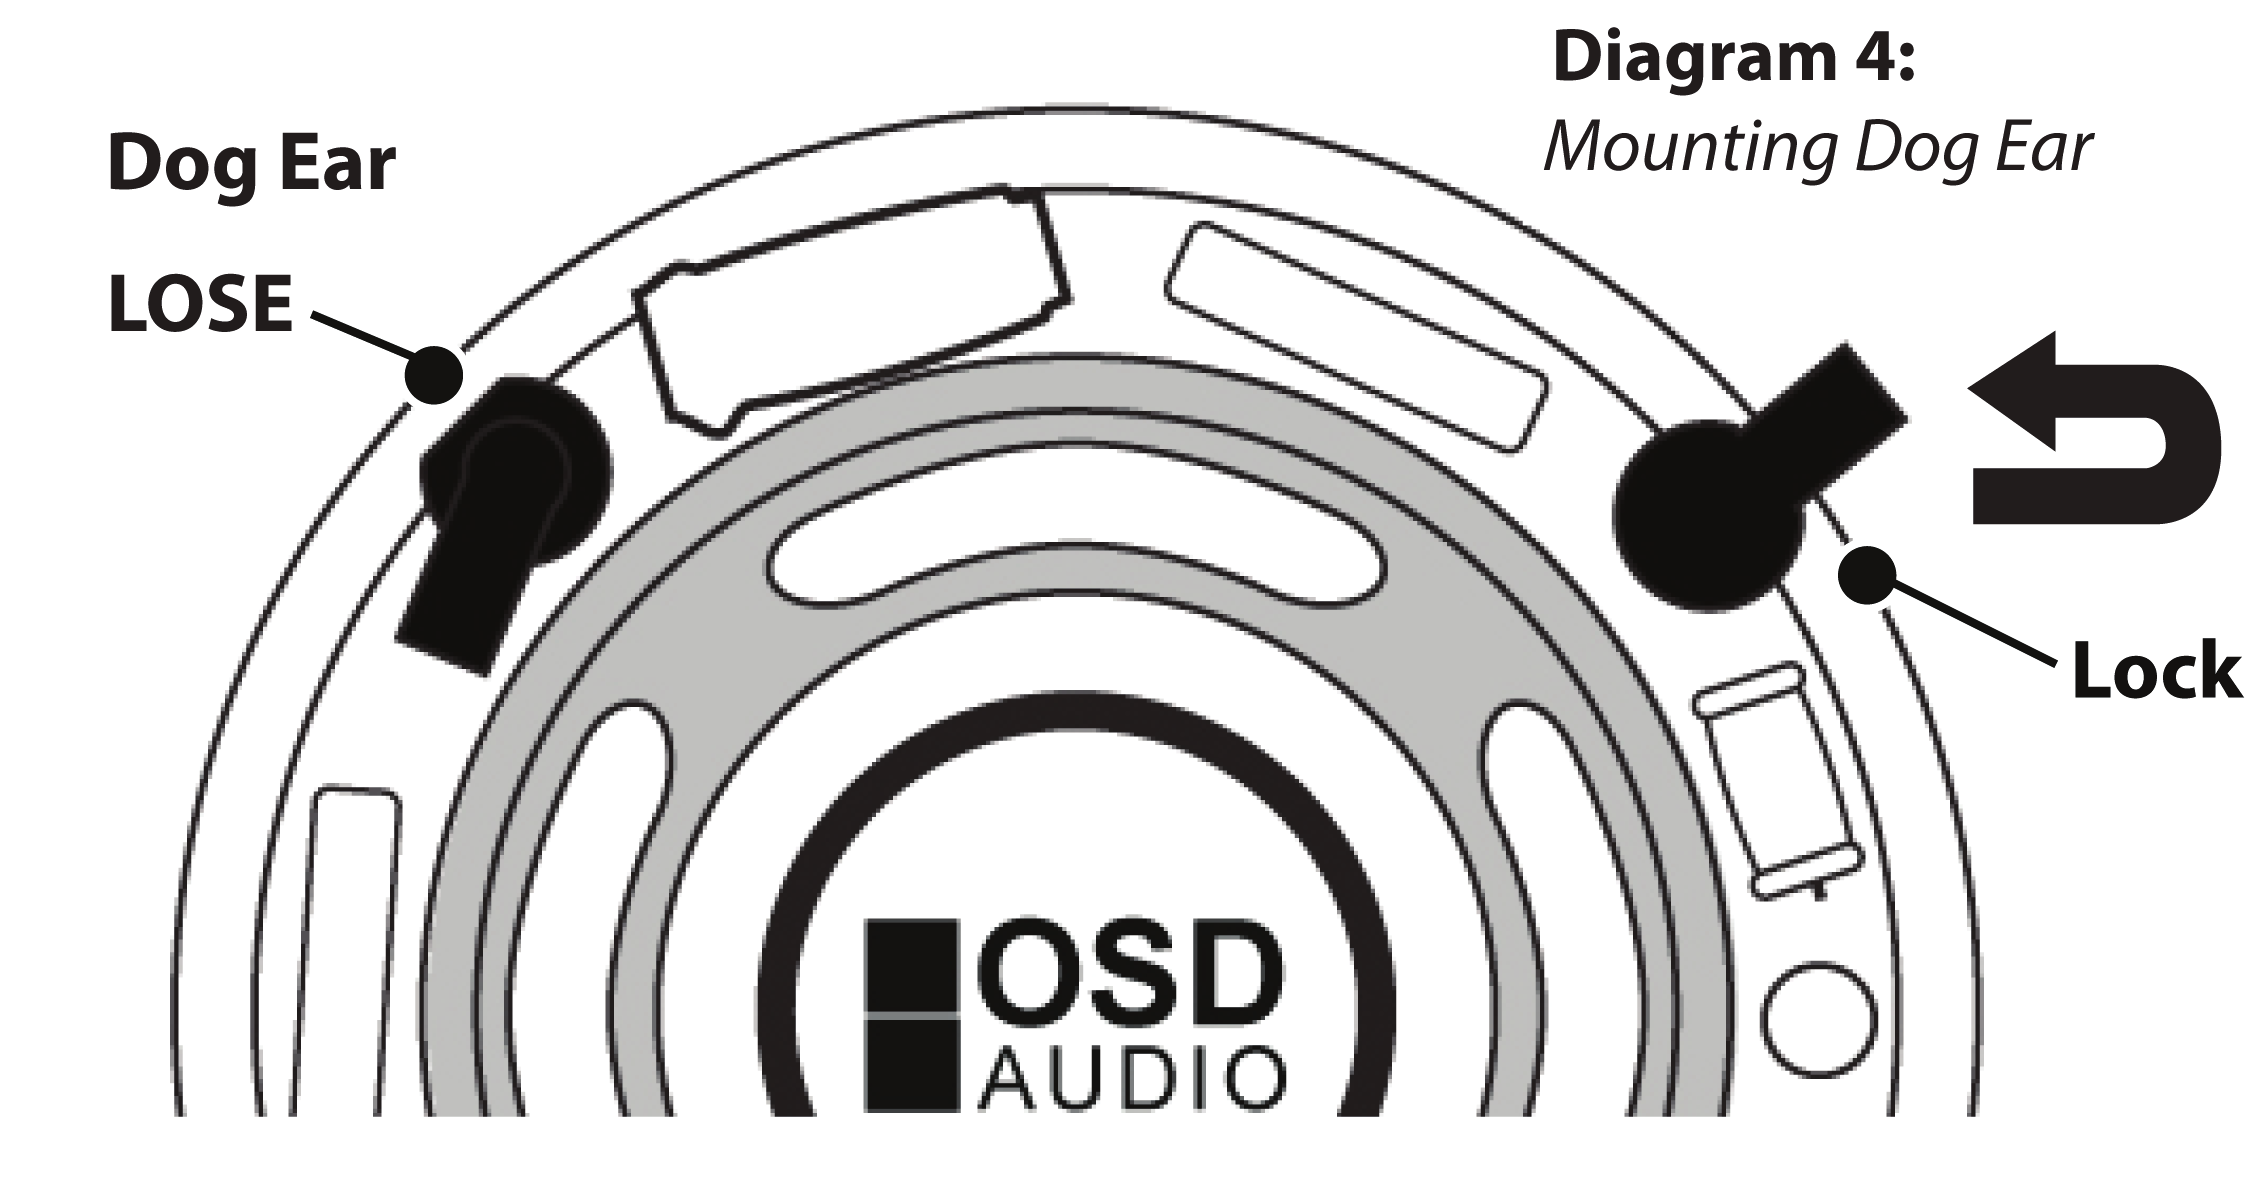 Osd Audio Owner S Manual In Ceiling Speakers Tools Needed For Wiring Installation Pencil Drill